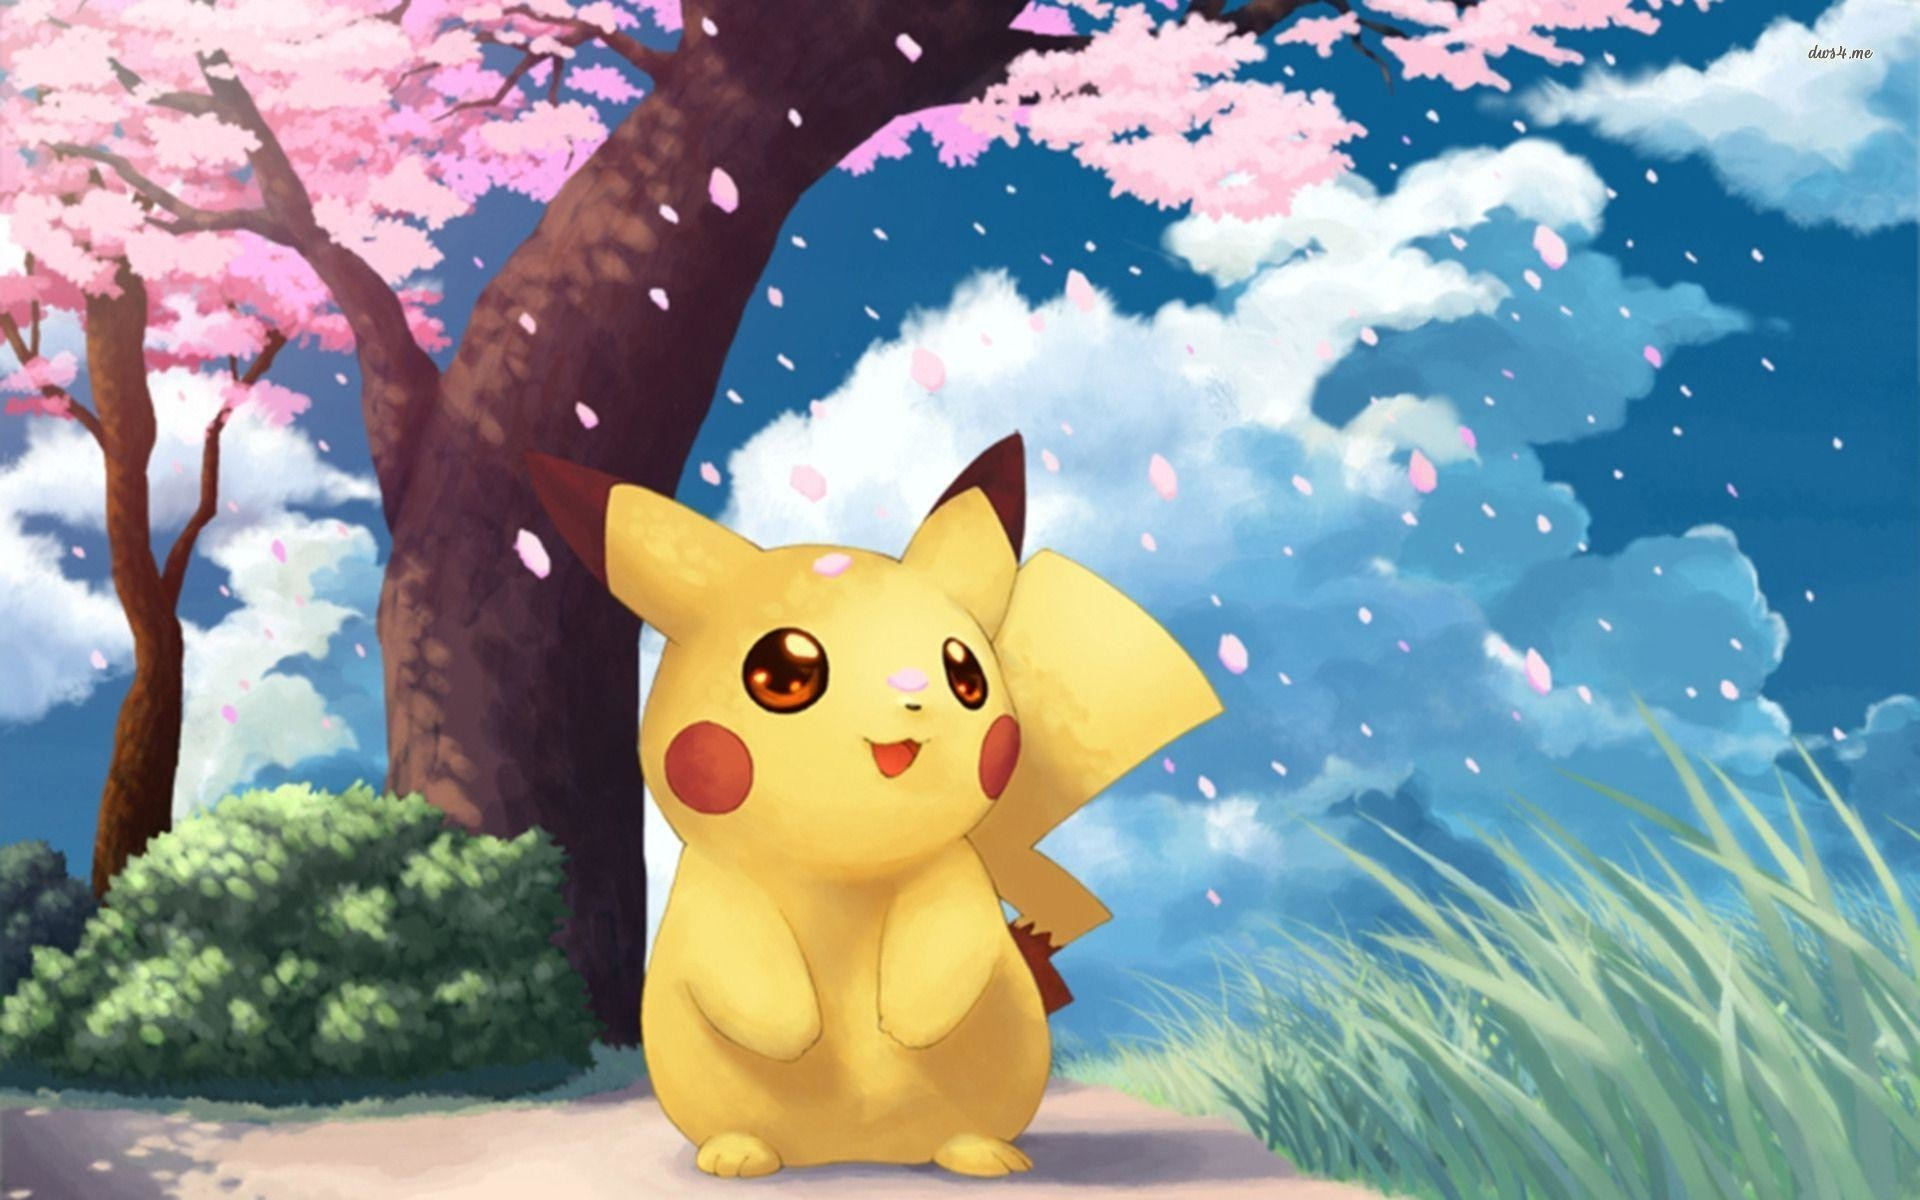 1920x1200 Most Downloaded Pokemon Pikachu Wallpapers - Full HD wallpaper search